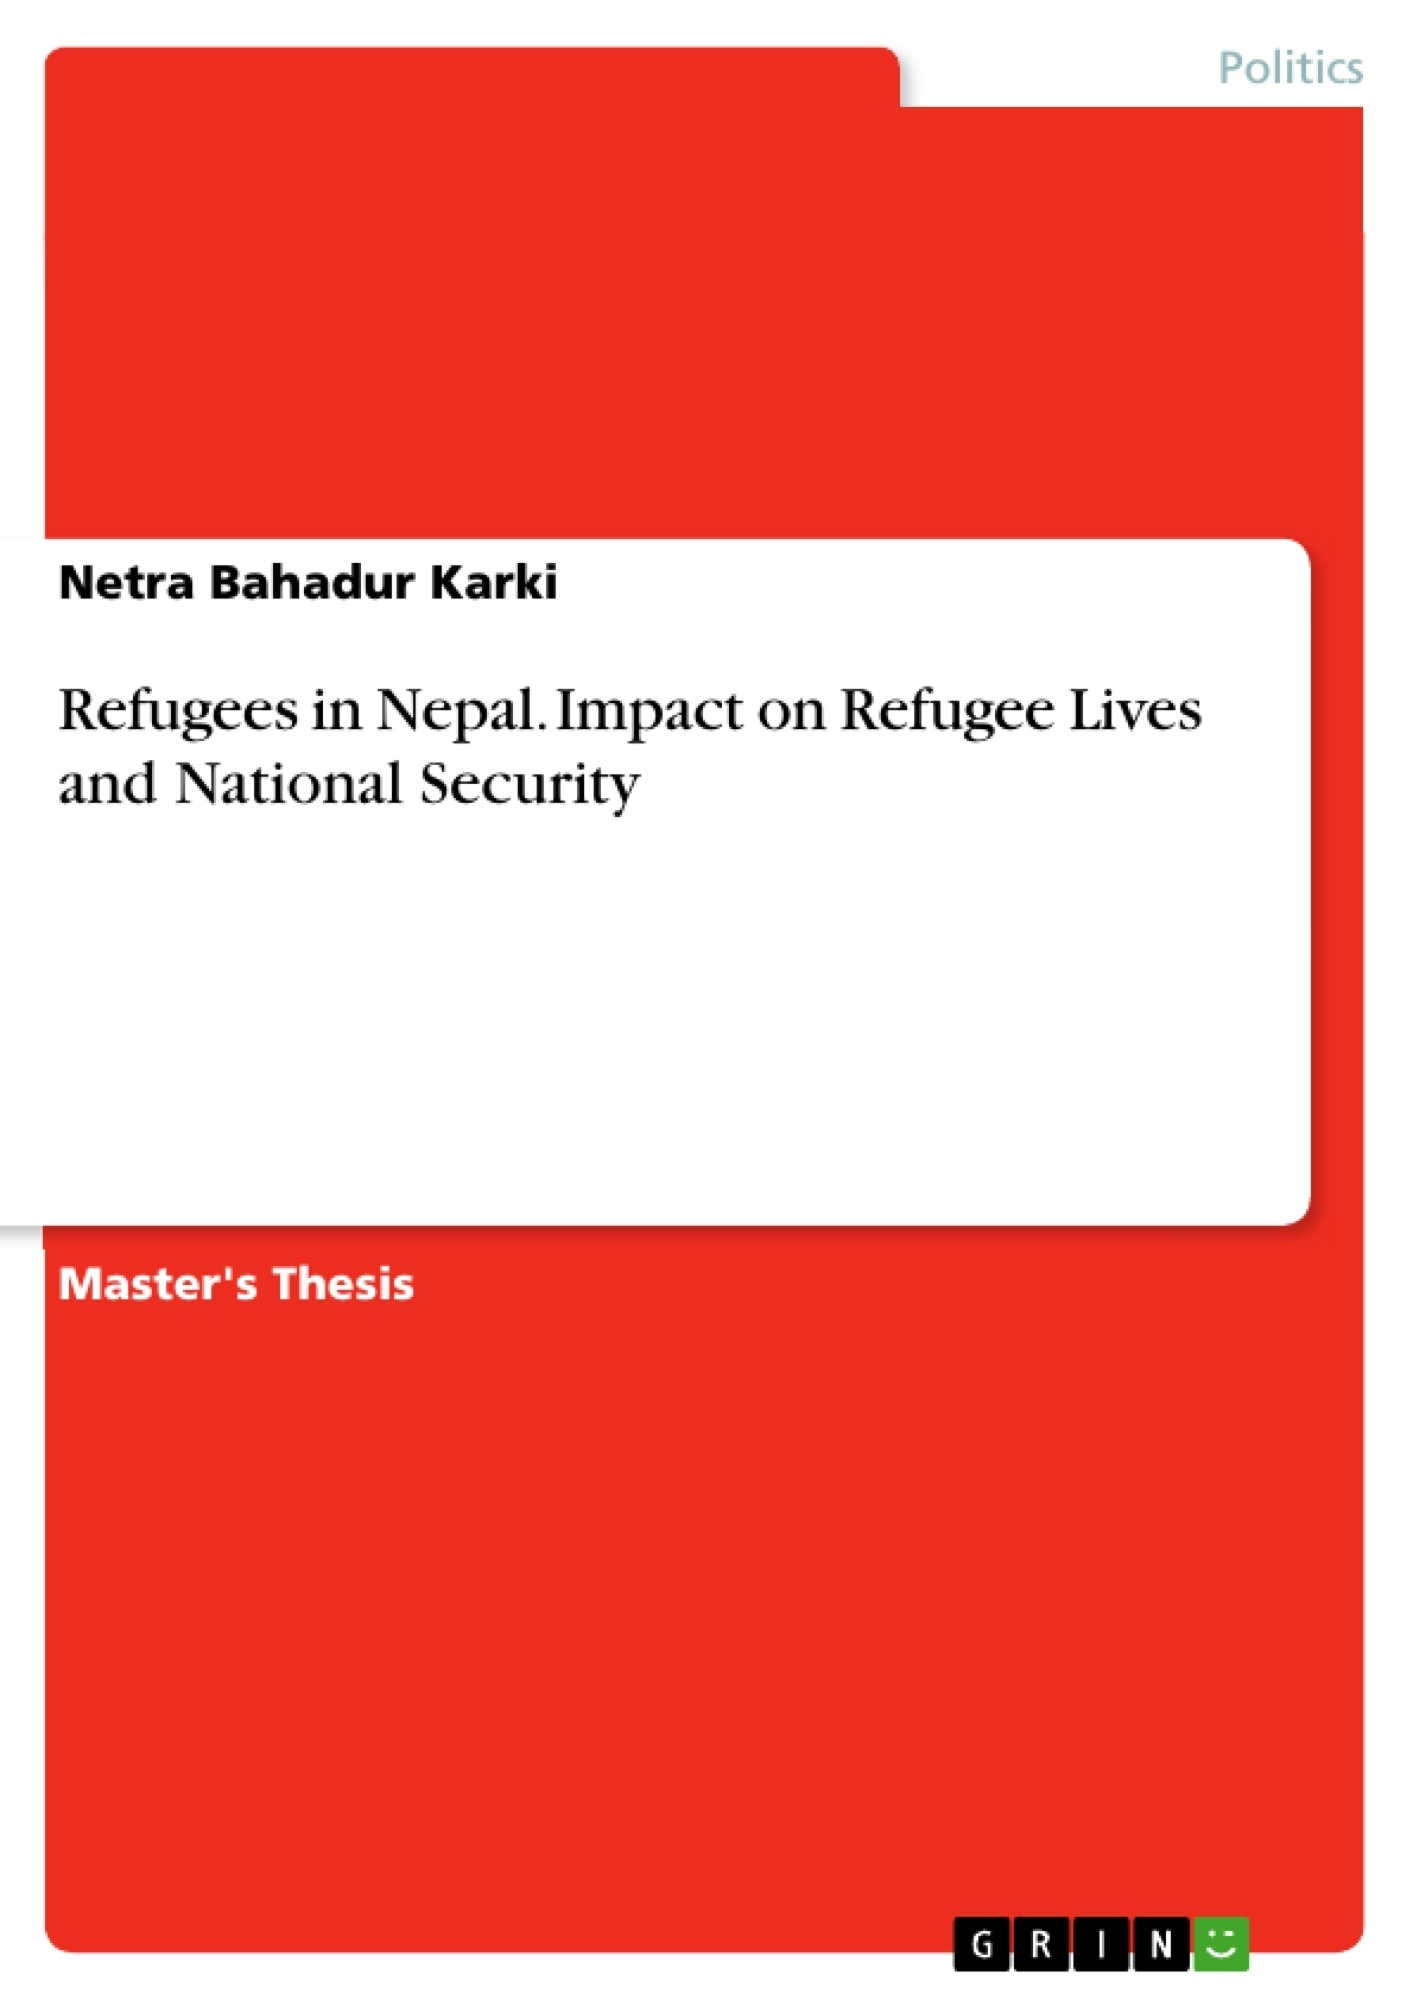 refugees in impact on refugee lives and national security impact on refugee lives and national security publish your master s thesis bachelor s thesis essay or term paper